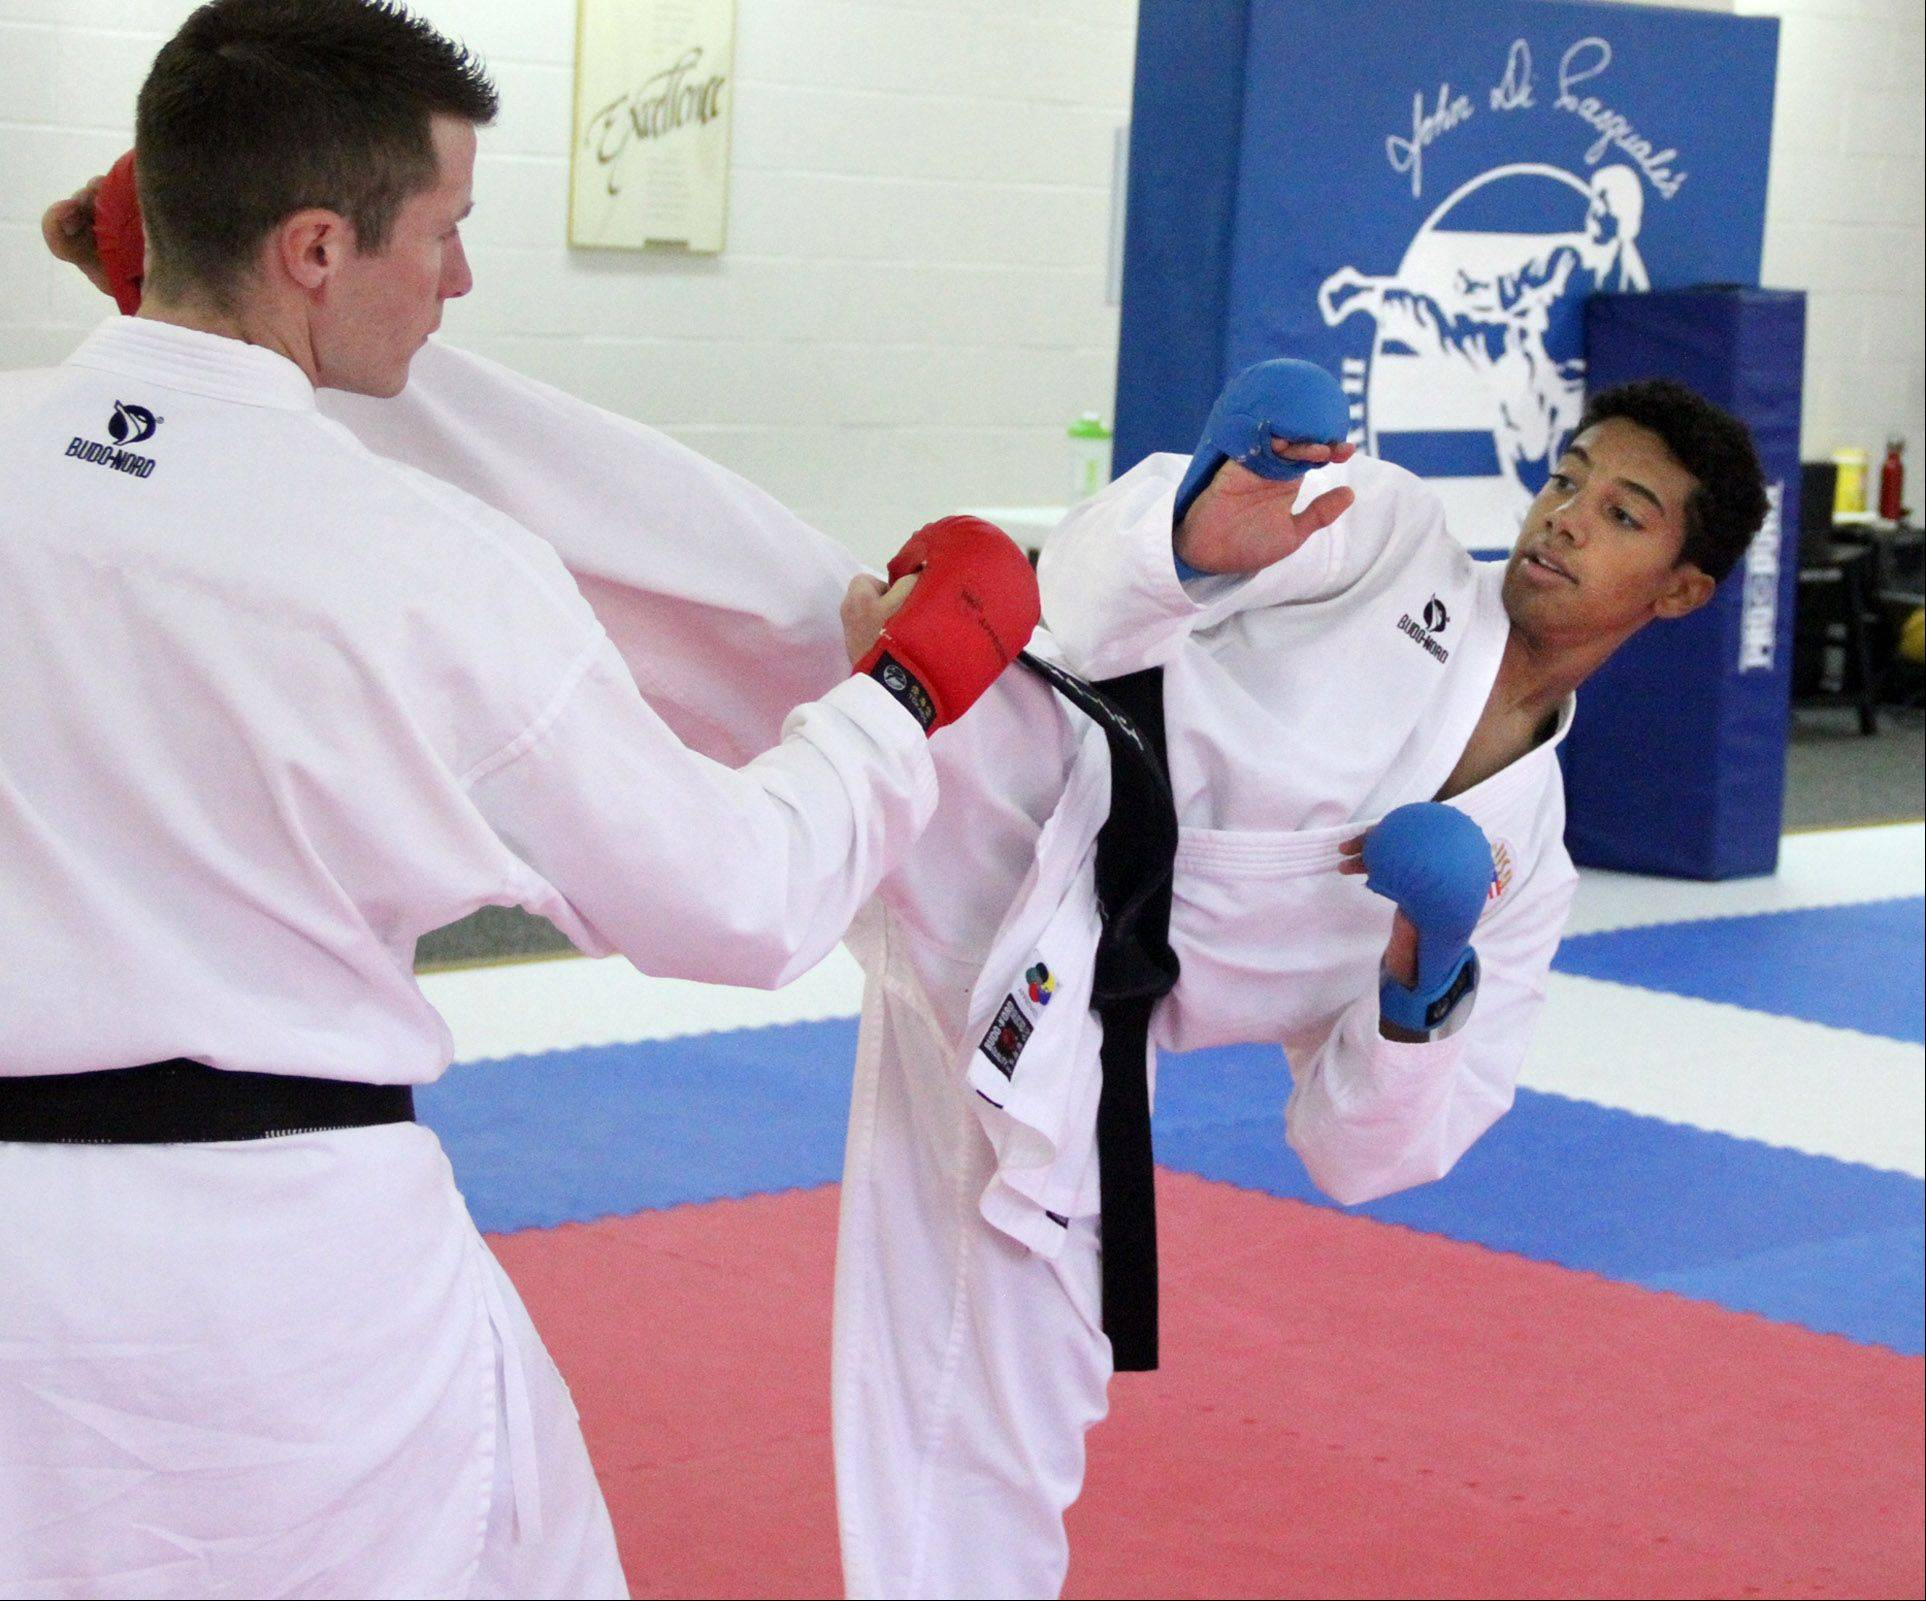 Brandon Malone, right, trains with karate instructor and U.S. team coach Brian Mertel at the Illinois Shotokan Karate Clubs dojo in Palatine.